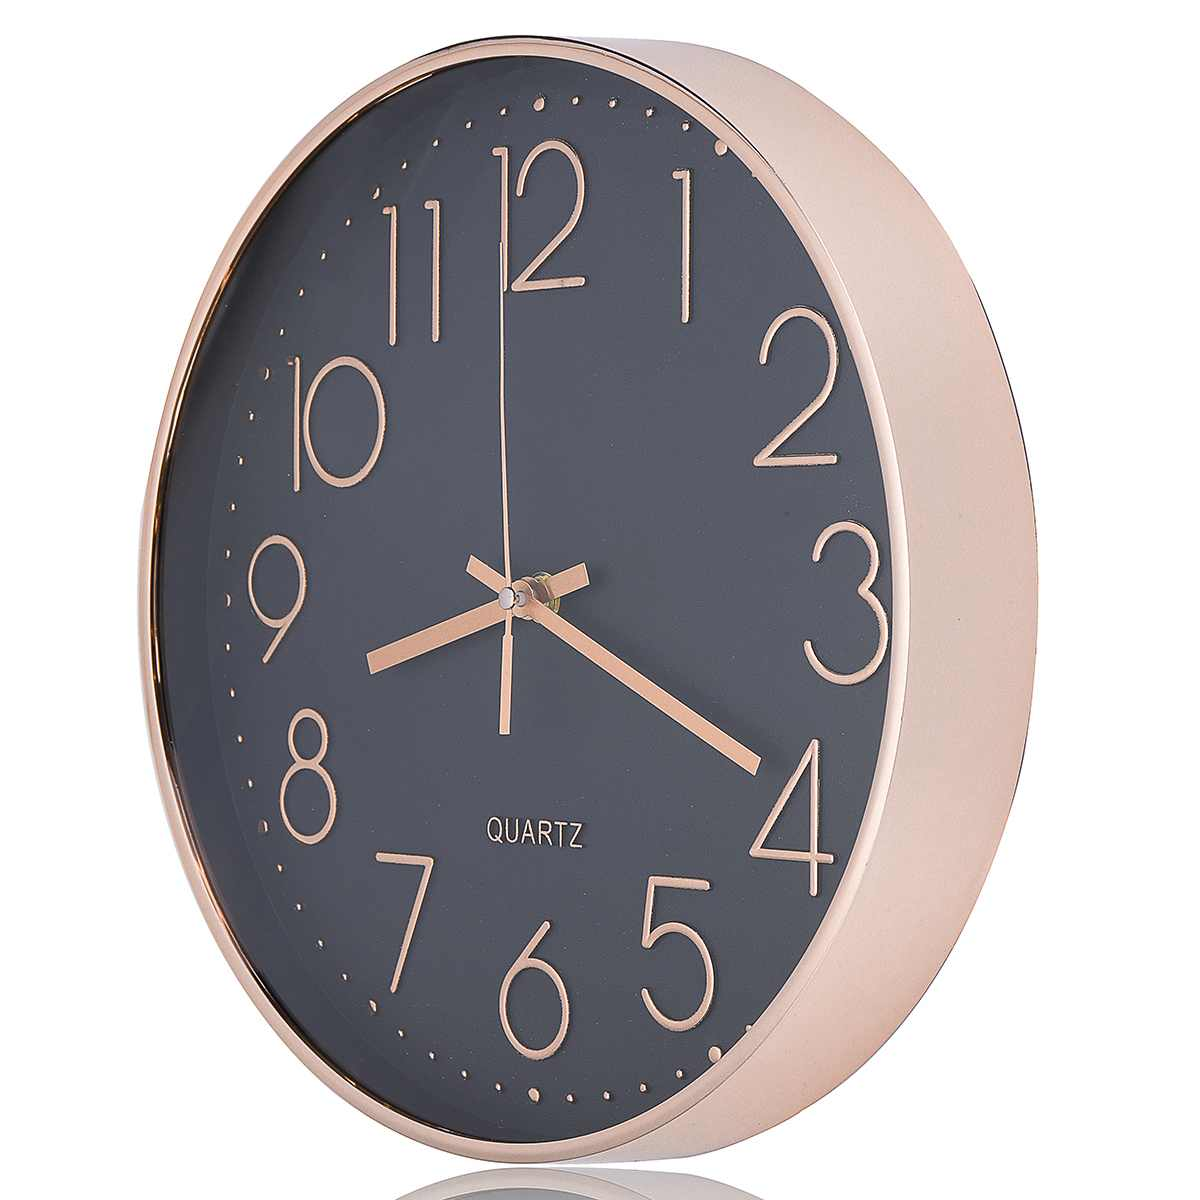 Wall-Clocks Wall-Hanging No-Battery Bedroom Rose-Gold Living-Room Home-Decor Black Silent title=